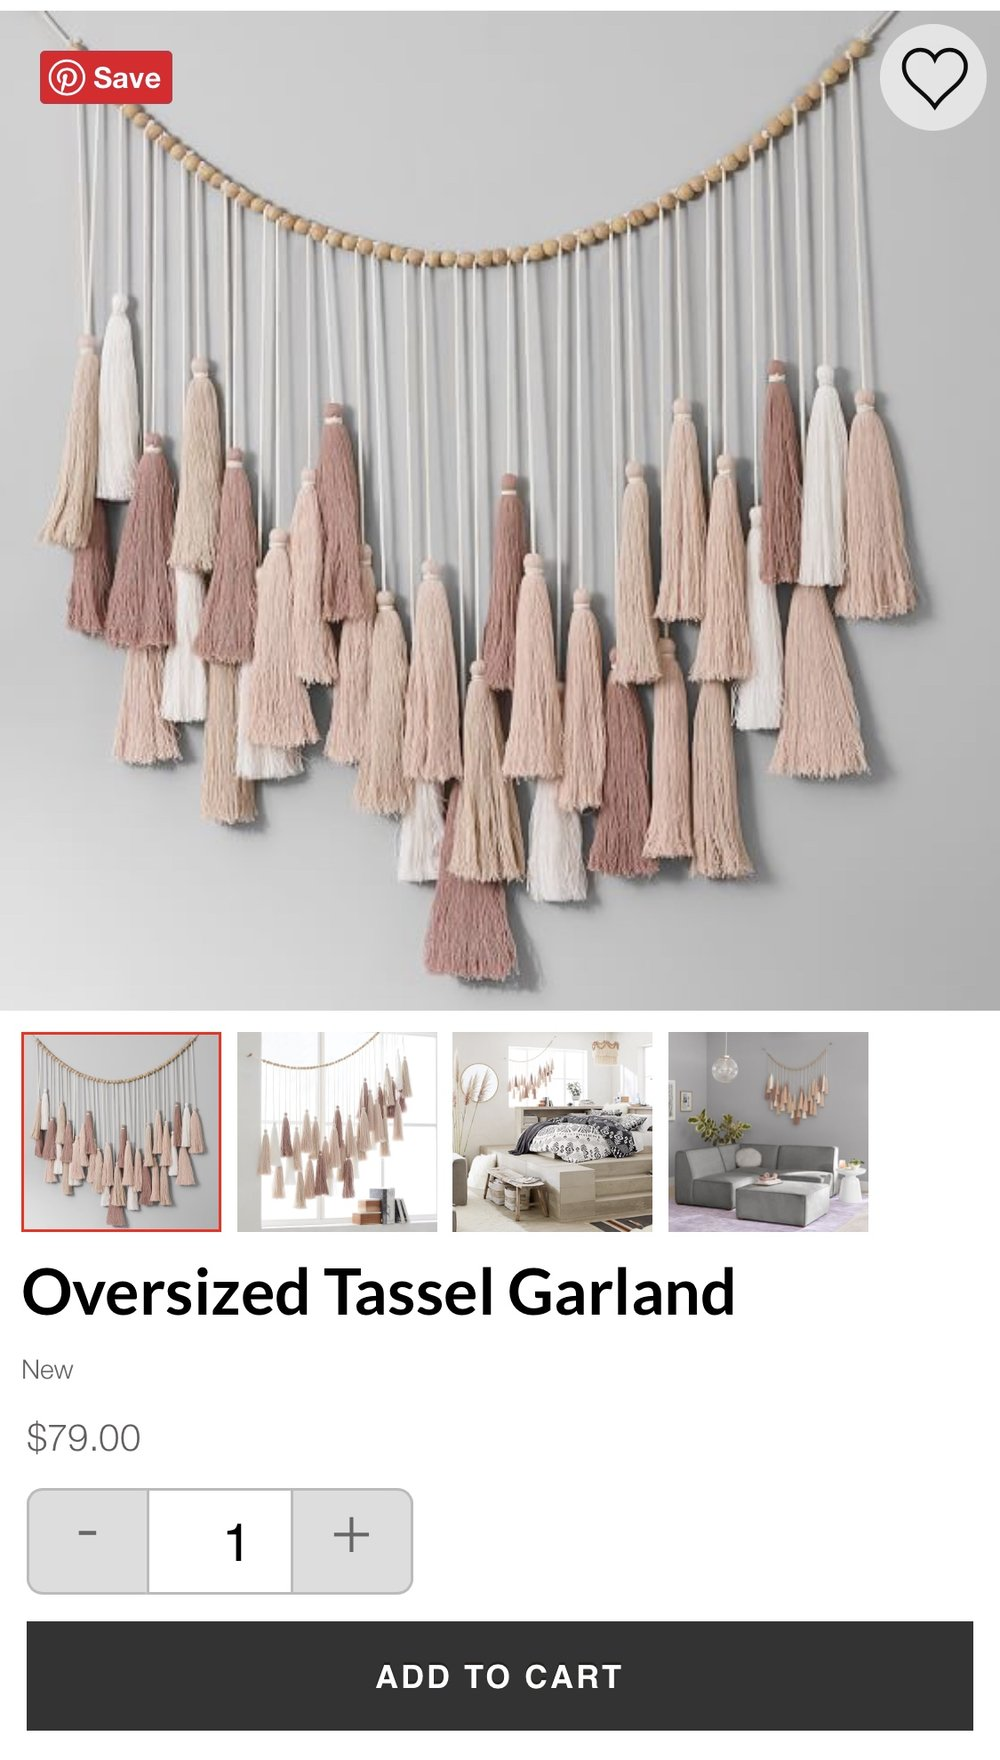 The Pottery Barn Oversized Garland that is the inspiration for my tassel garland tutorial.